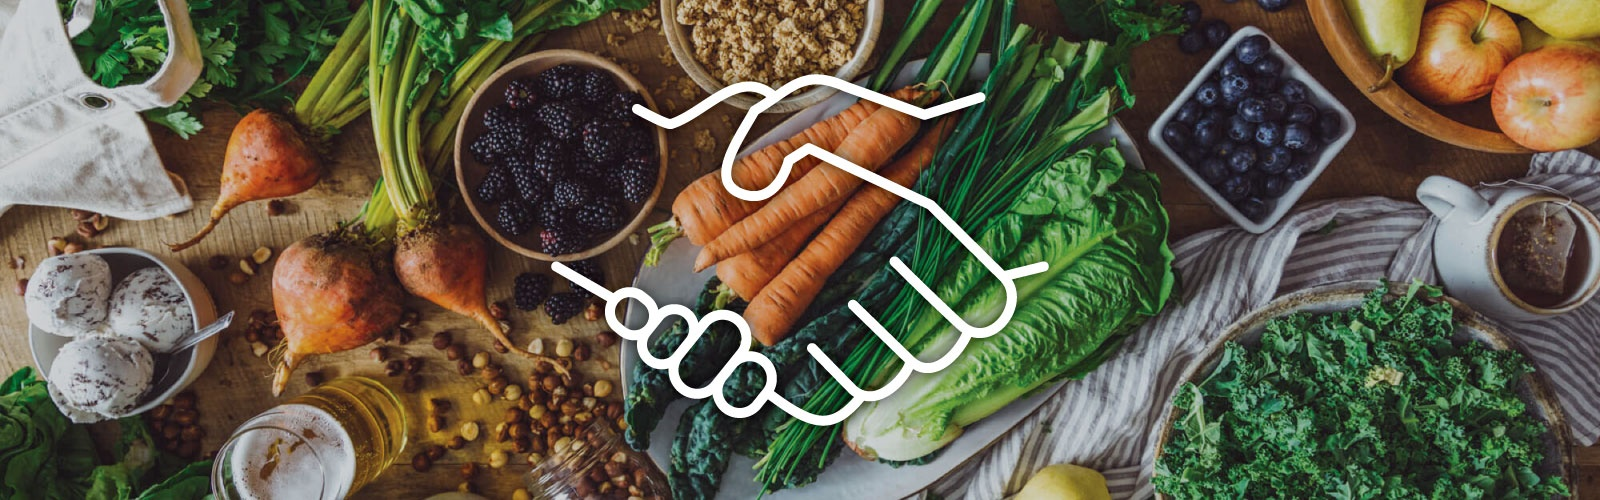 White lineart icon of two shaking hands against a backdrop of various produce